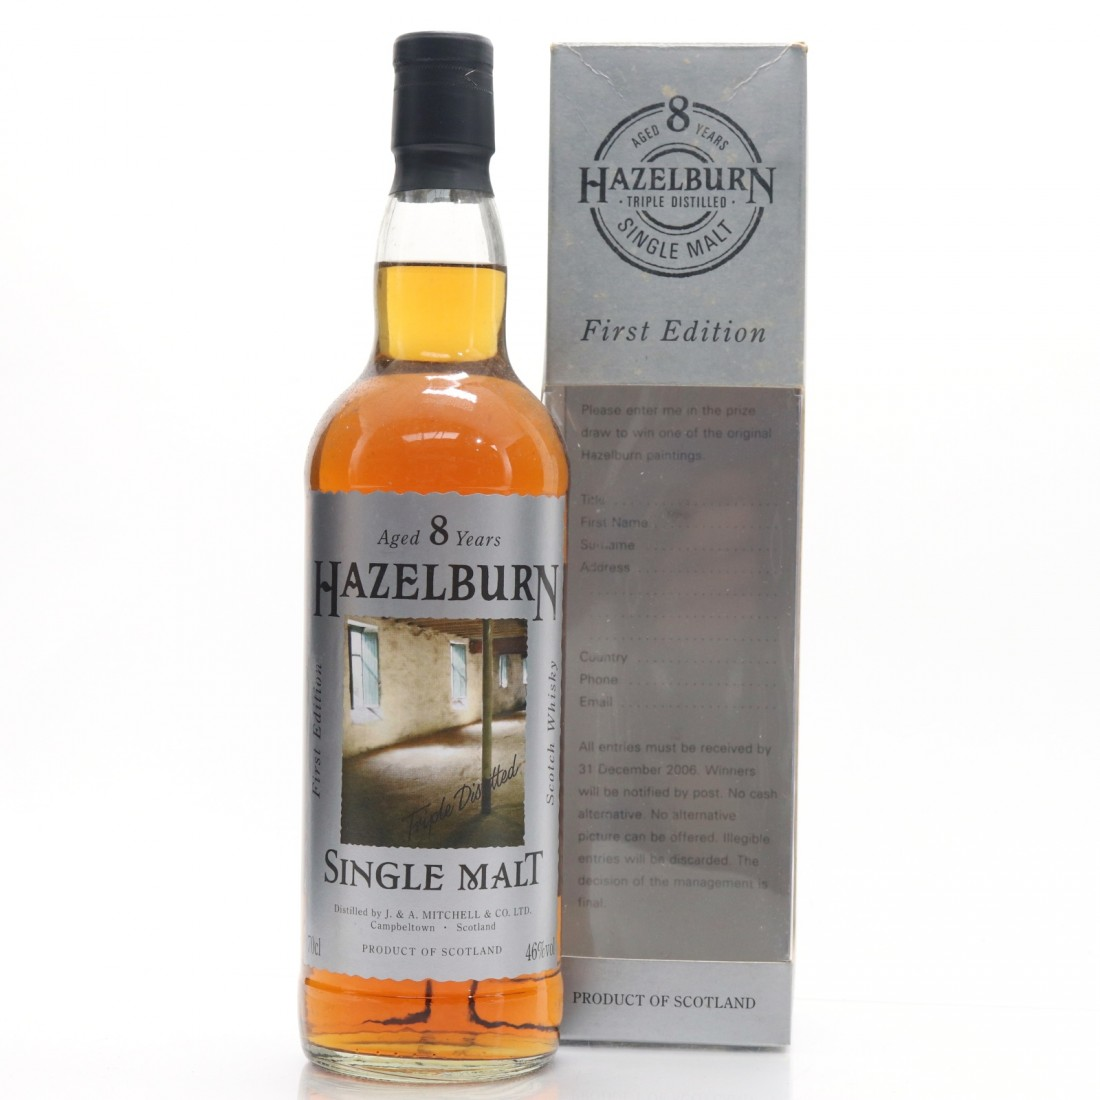 Hazelburn 8 Year Old First Edition 'The Maltings'